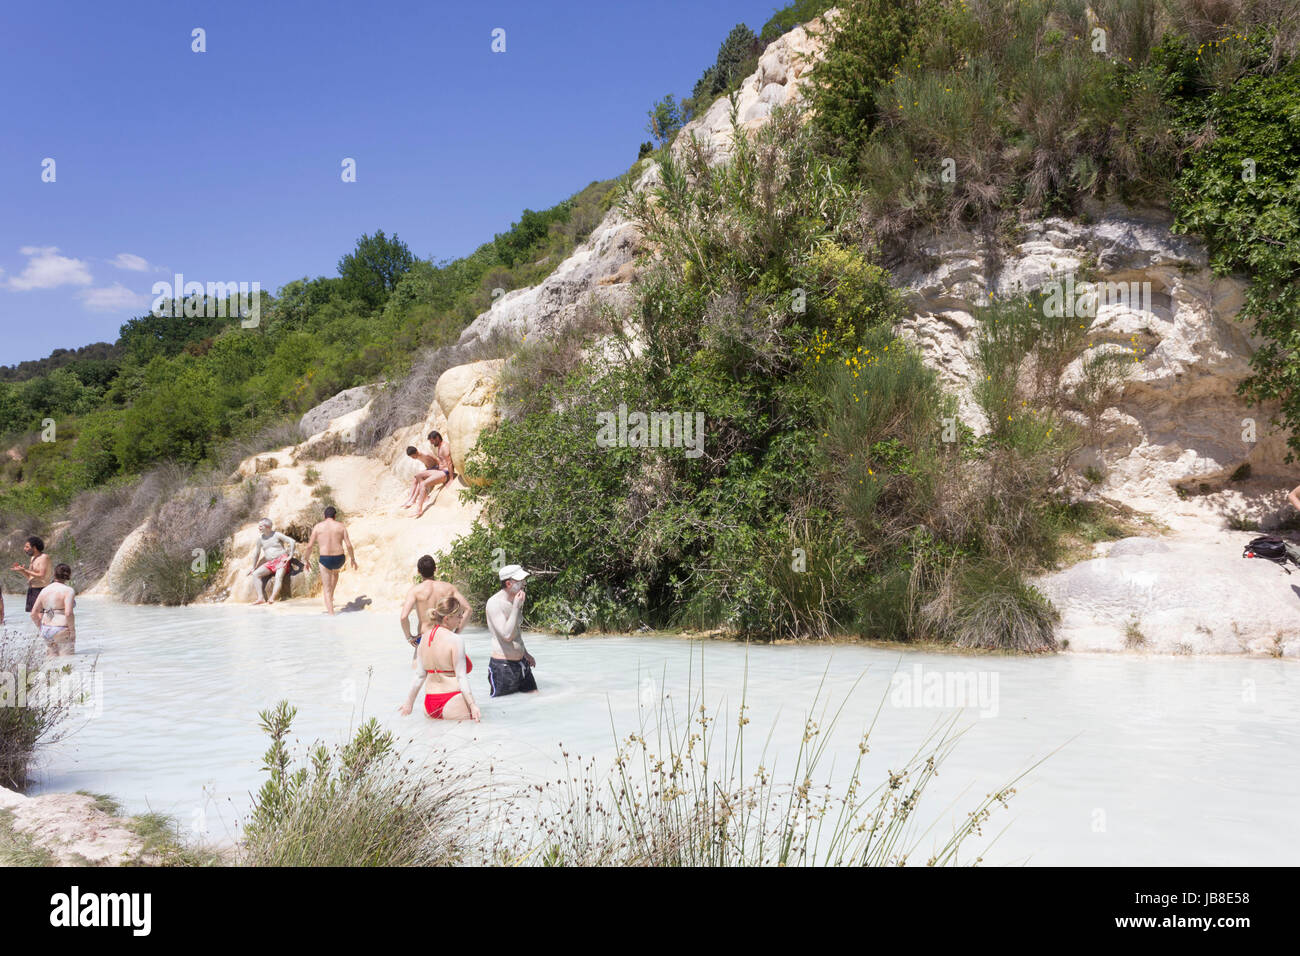 Bagno Vignoni Free Thermal Baths Bagno Vignoni Italy June 3 2017 People Bathing In The Free